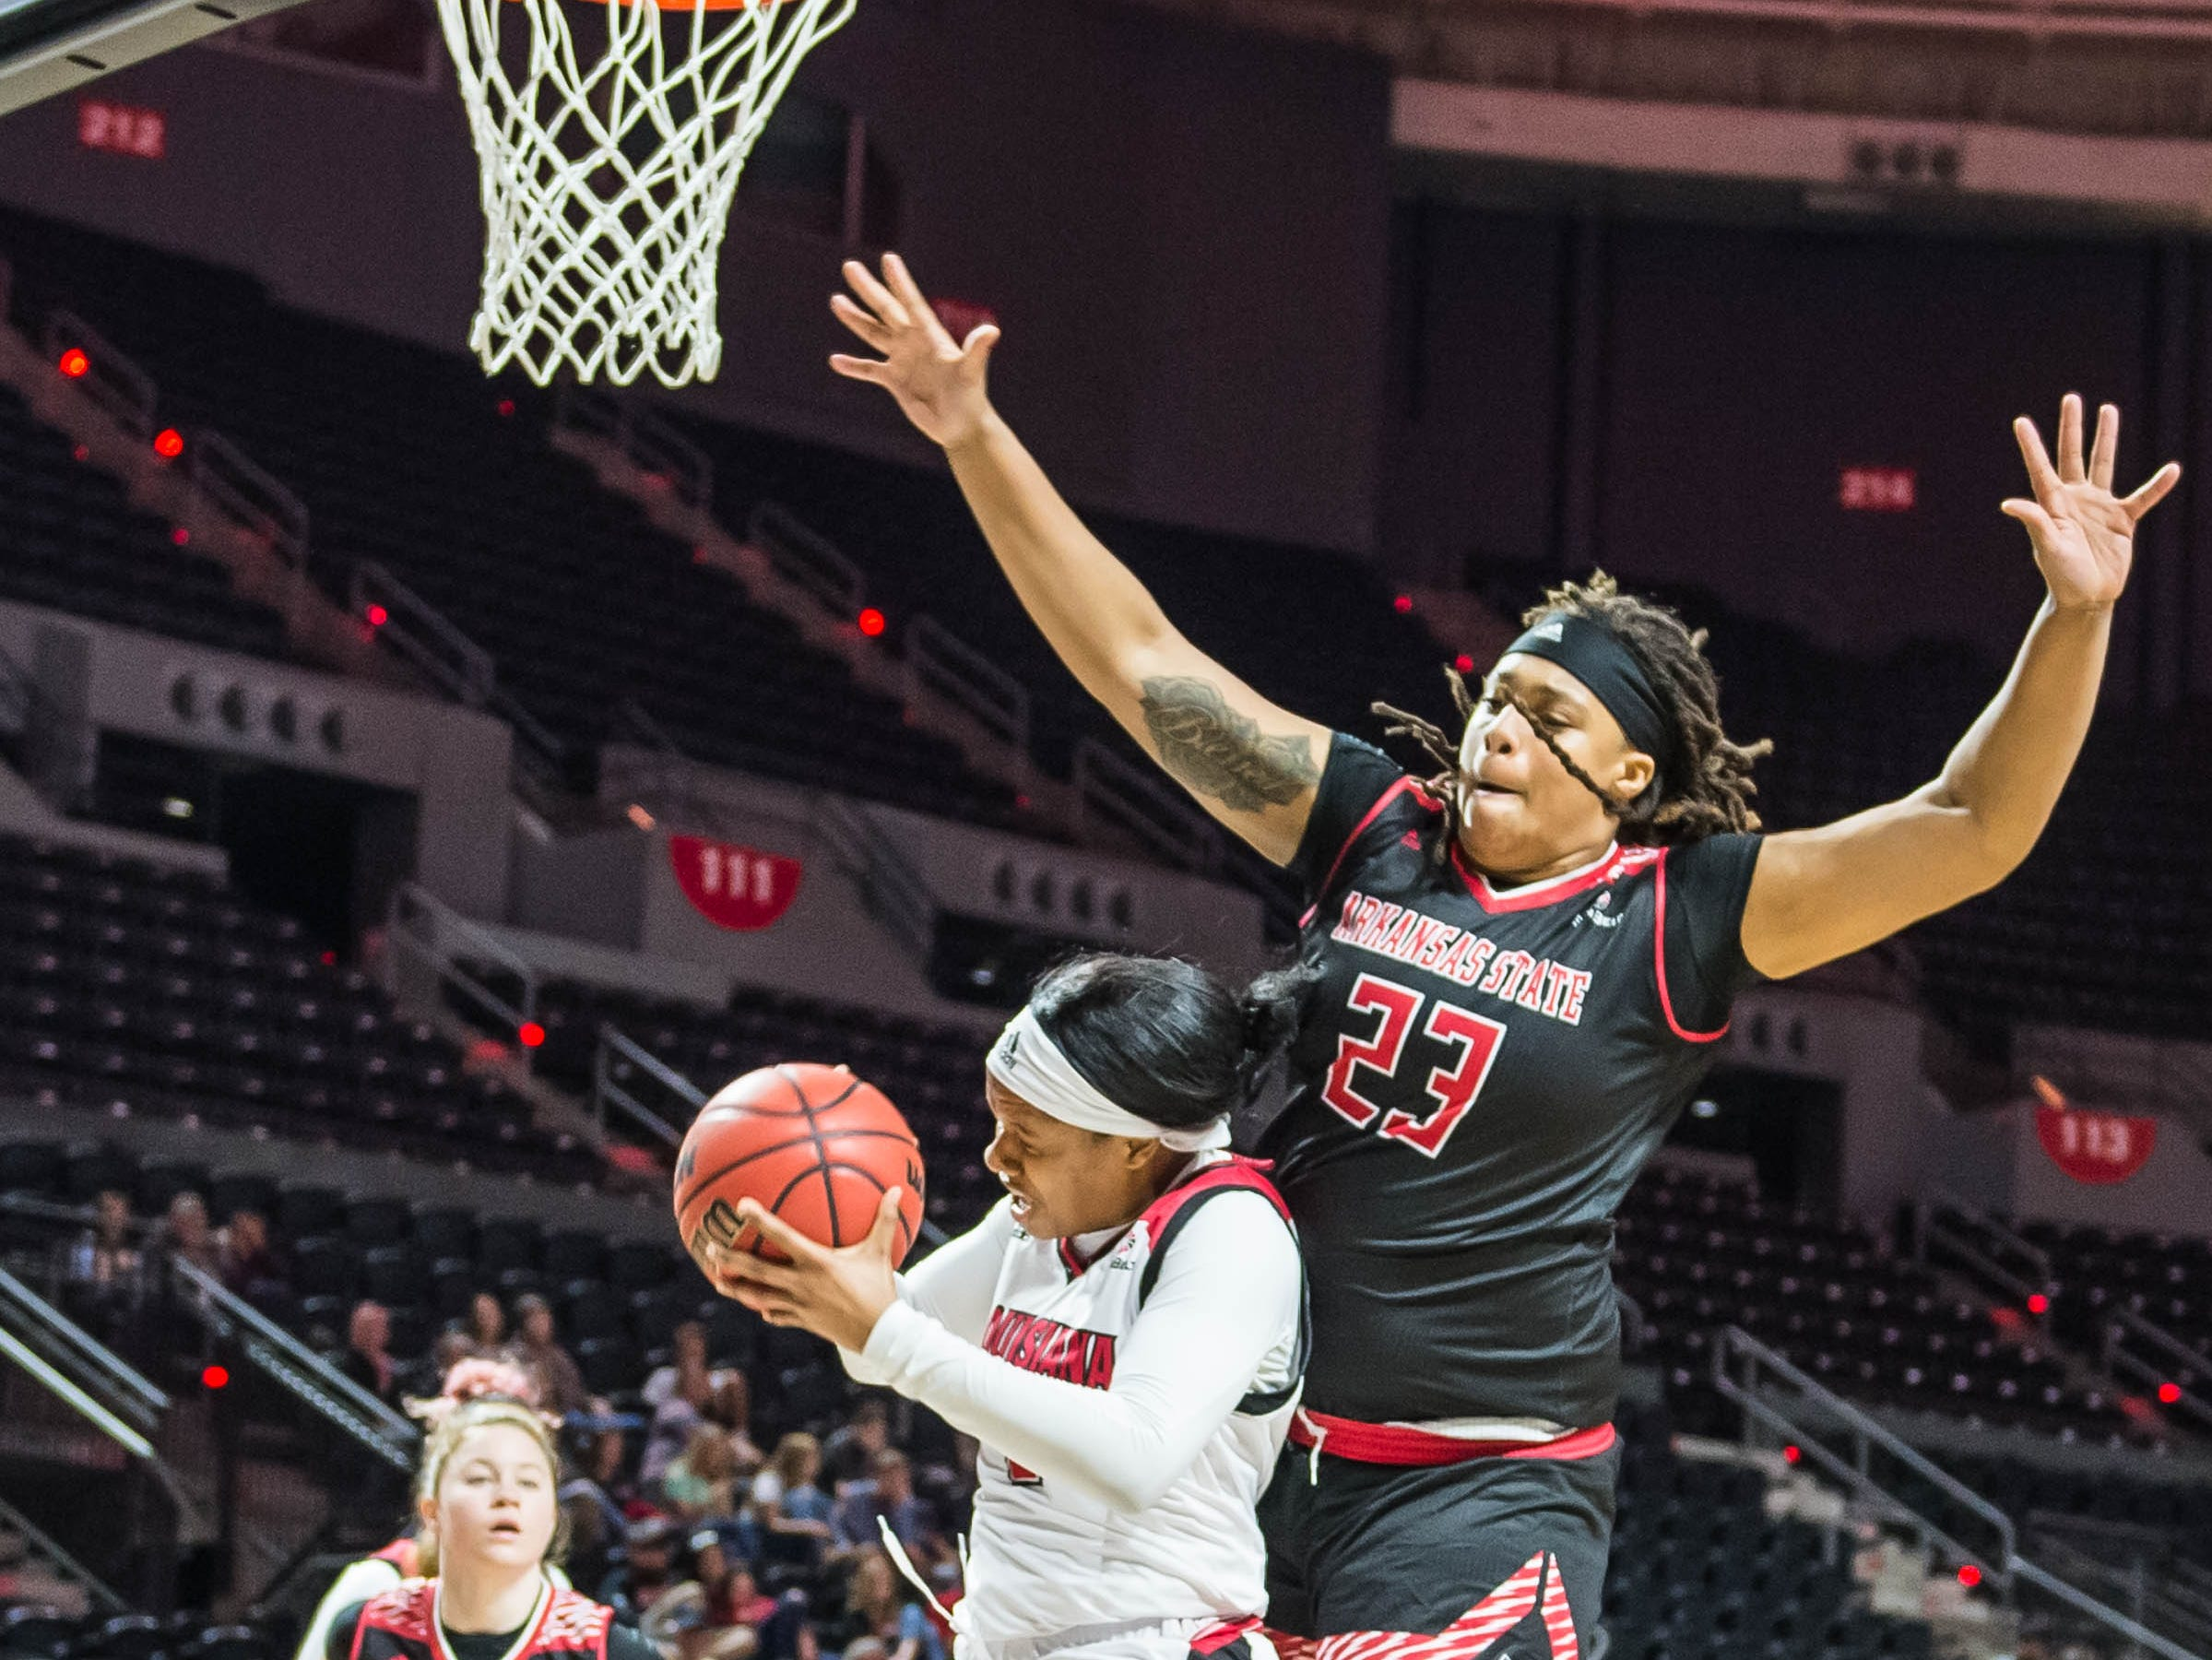 The Ragin Cajuns women's basketball team play the Arkansas Red Wolves at the Cajundome on Saturday March 9, 2019.